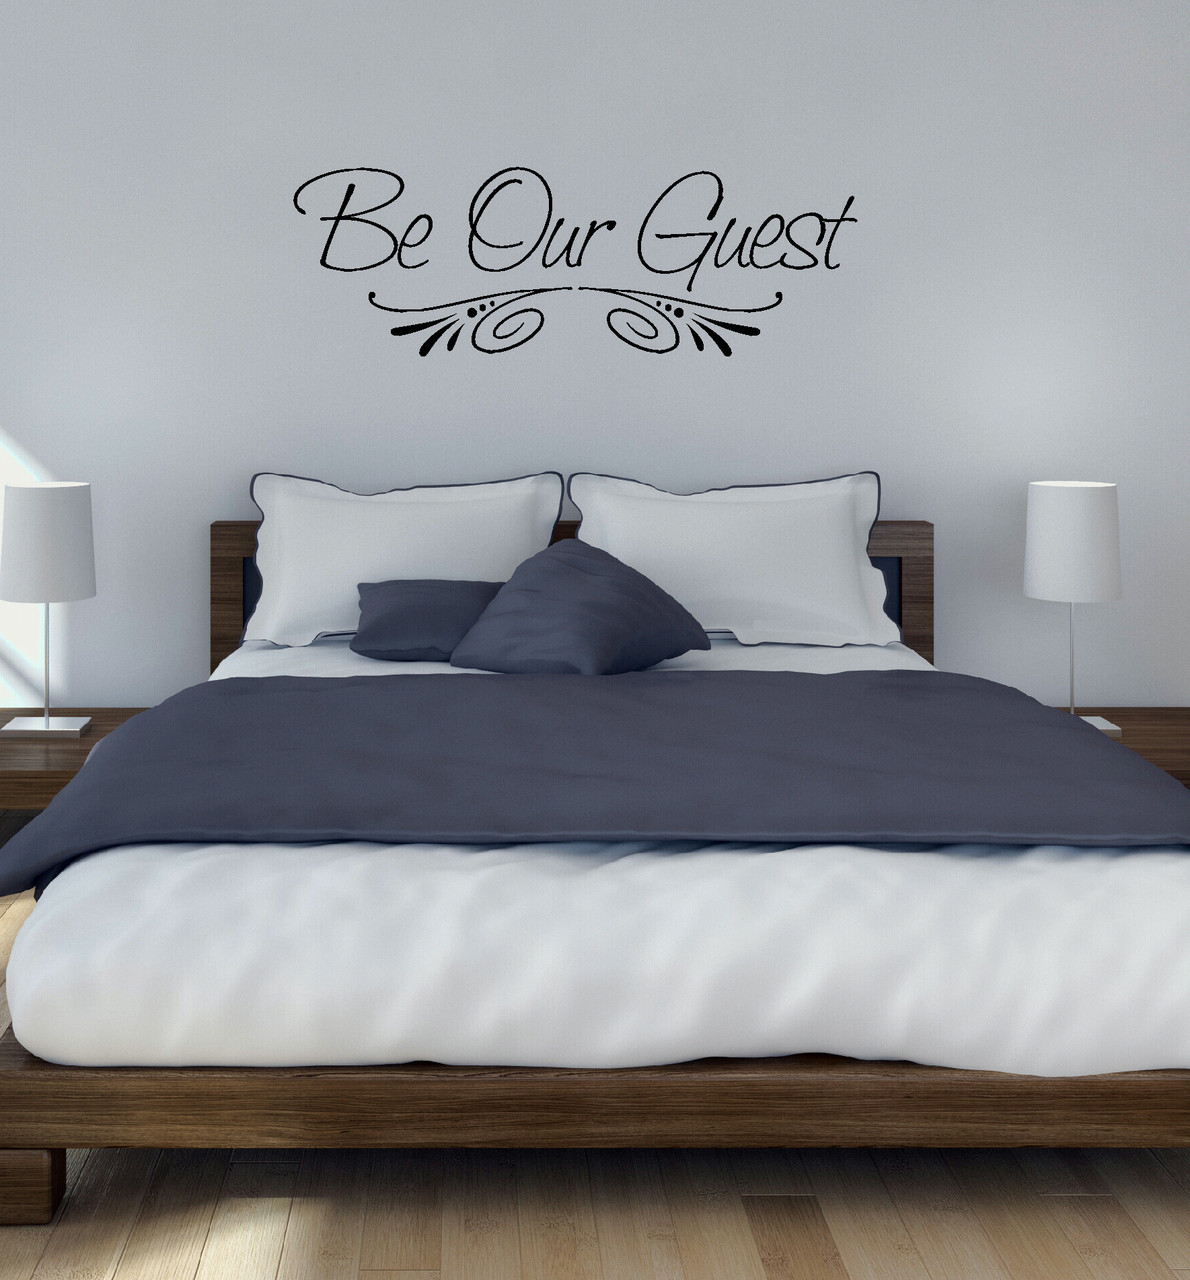 Be Our Guest Wall Decal Sticker For Home Decor